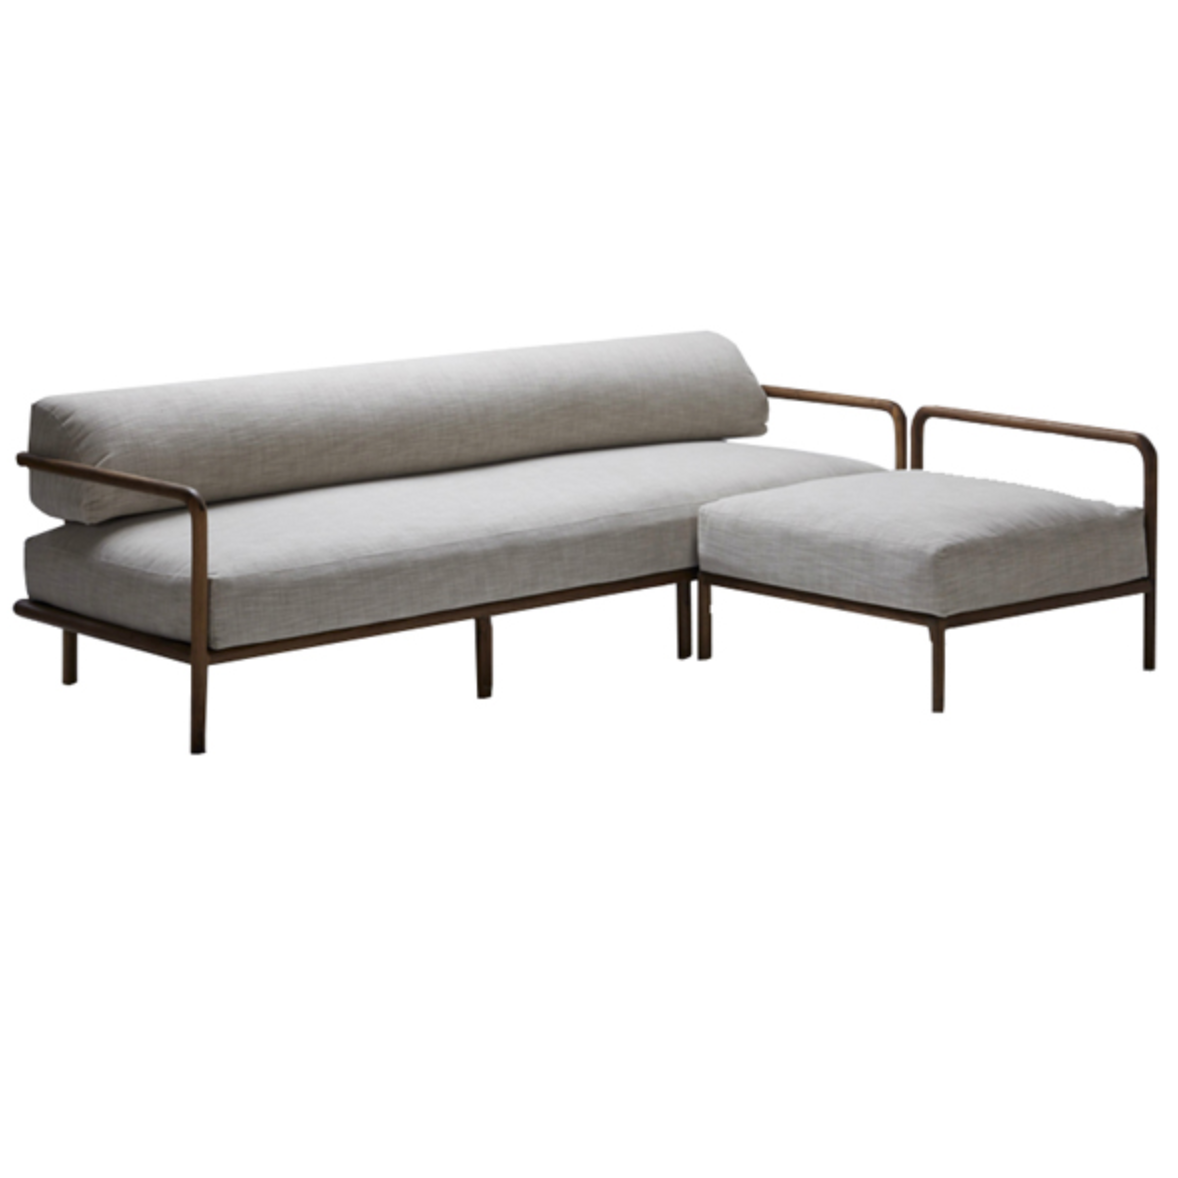 Melike L-Shaped Sofa by Meyer Von Wielligh. Inspired by the stark beauty of the Namibian landscape where Abrie grew up, the Melike sofa is an uncomplicated design imbued with a simplicity in both material and detail.